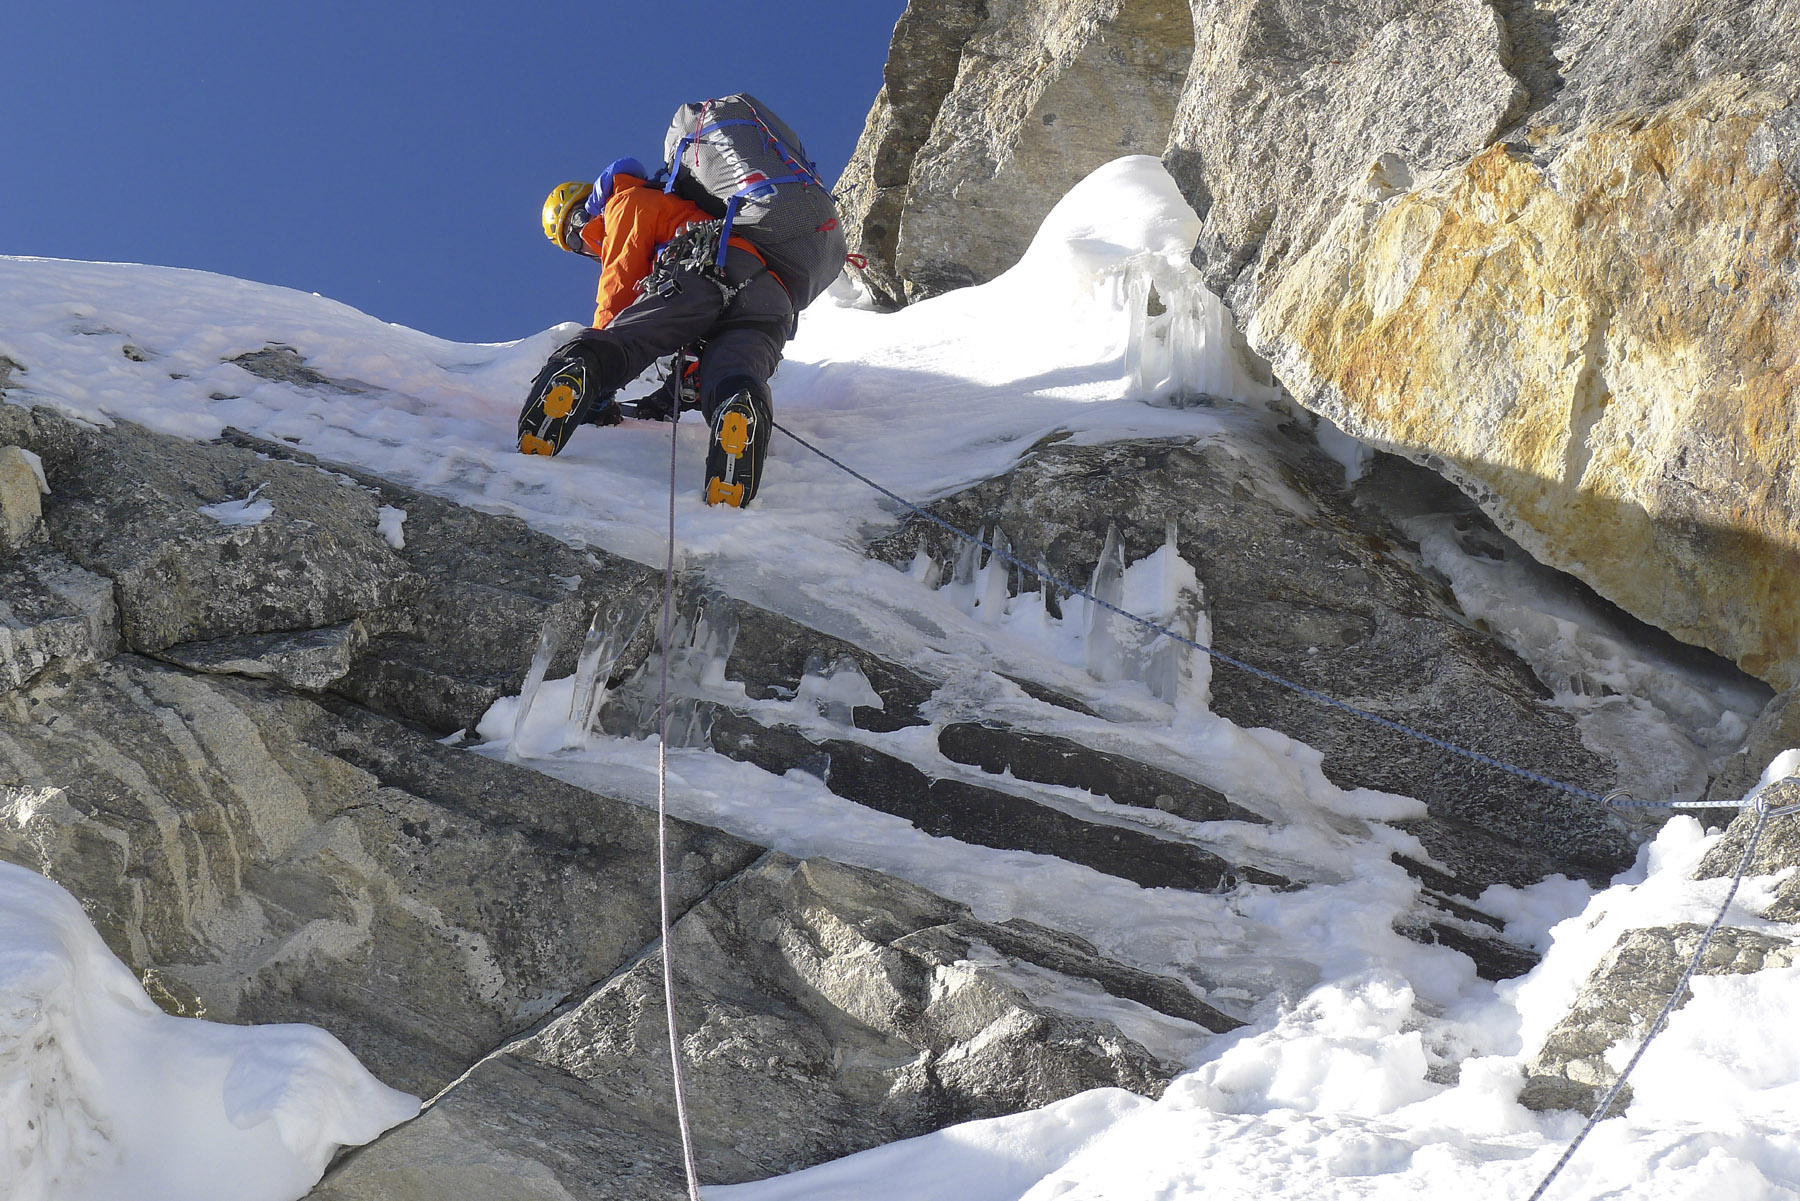 About halfway up the Prow, Mick Fowler heads up the first pitch on day six above base camp. Paul Ramsden